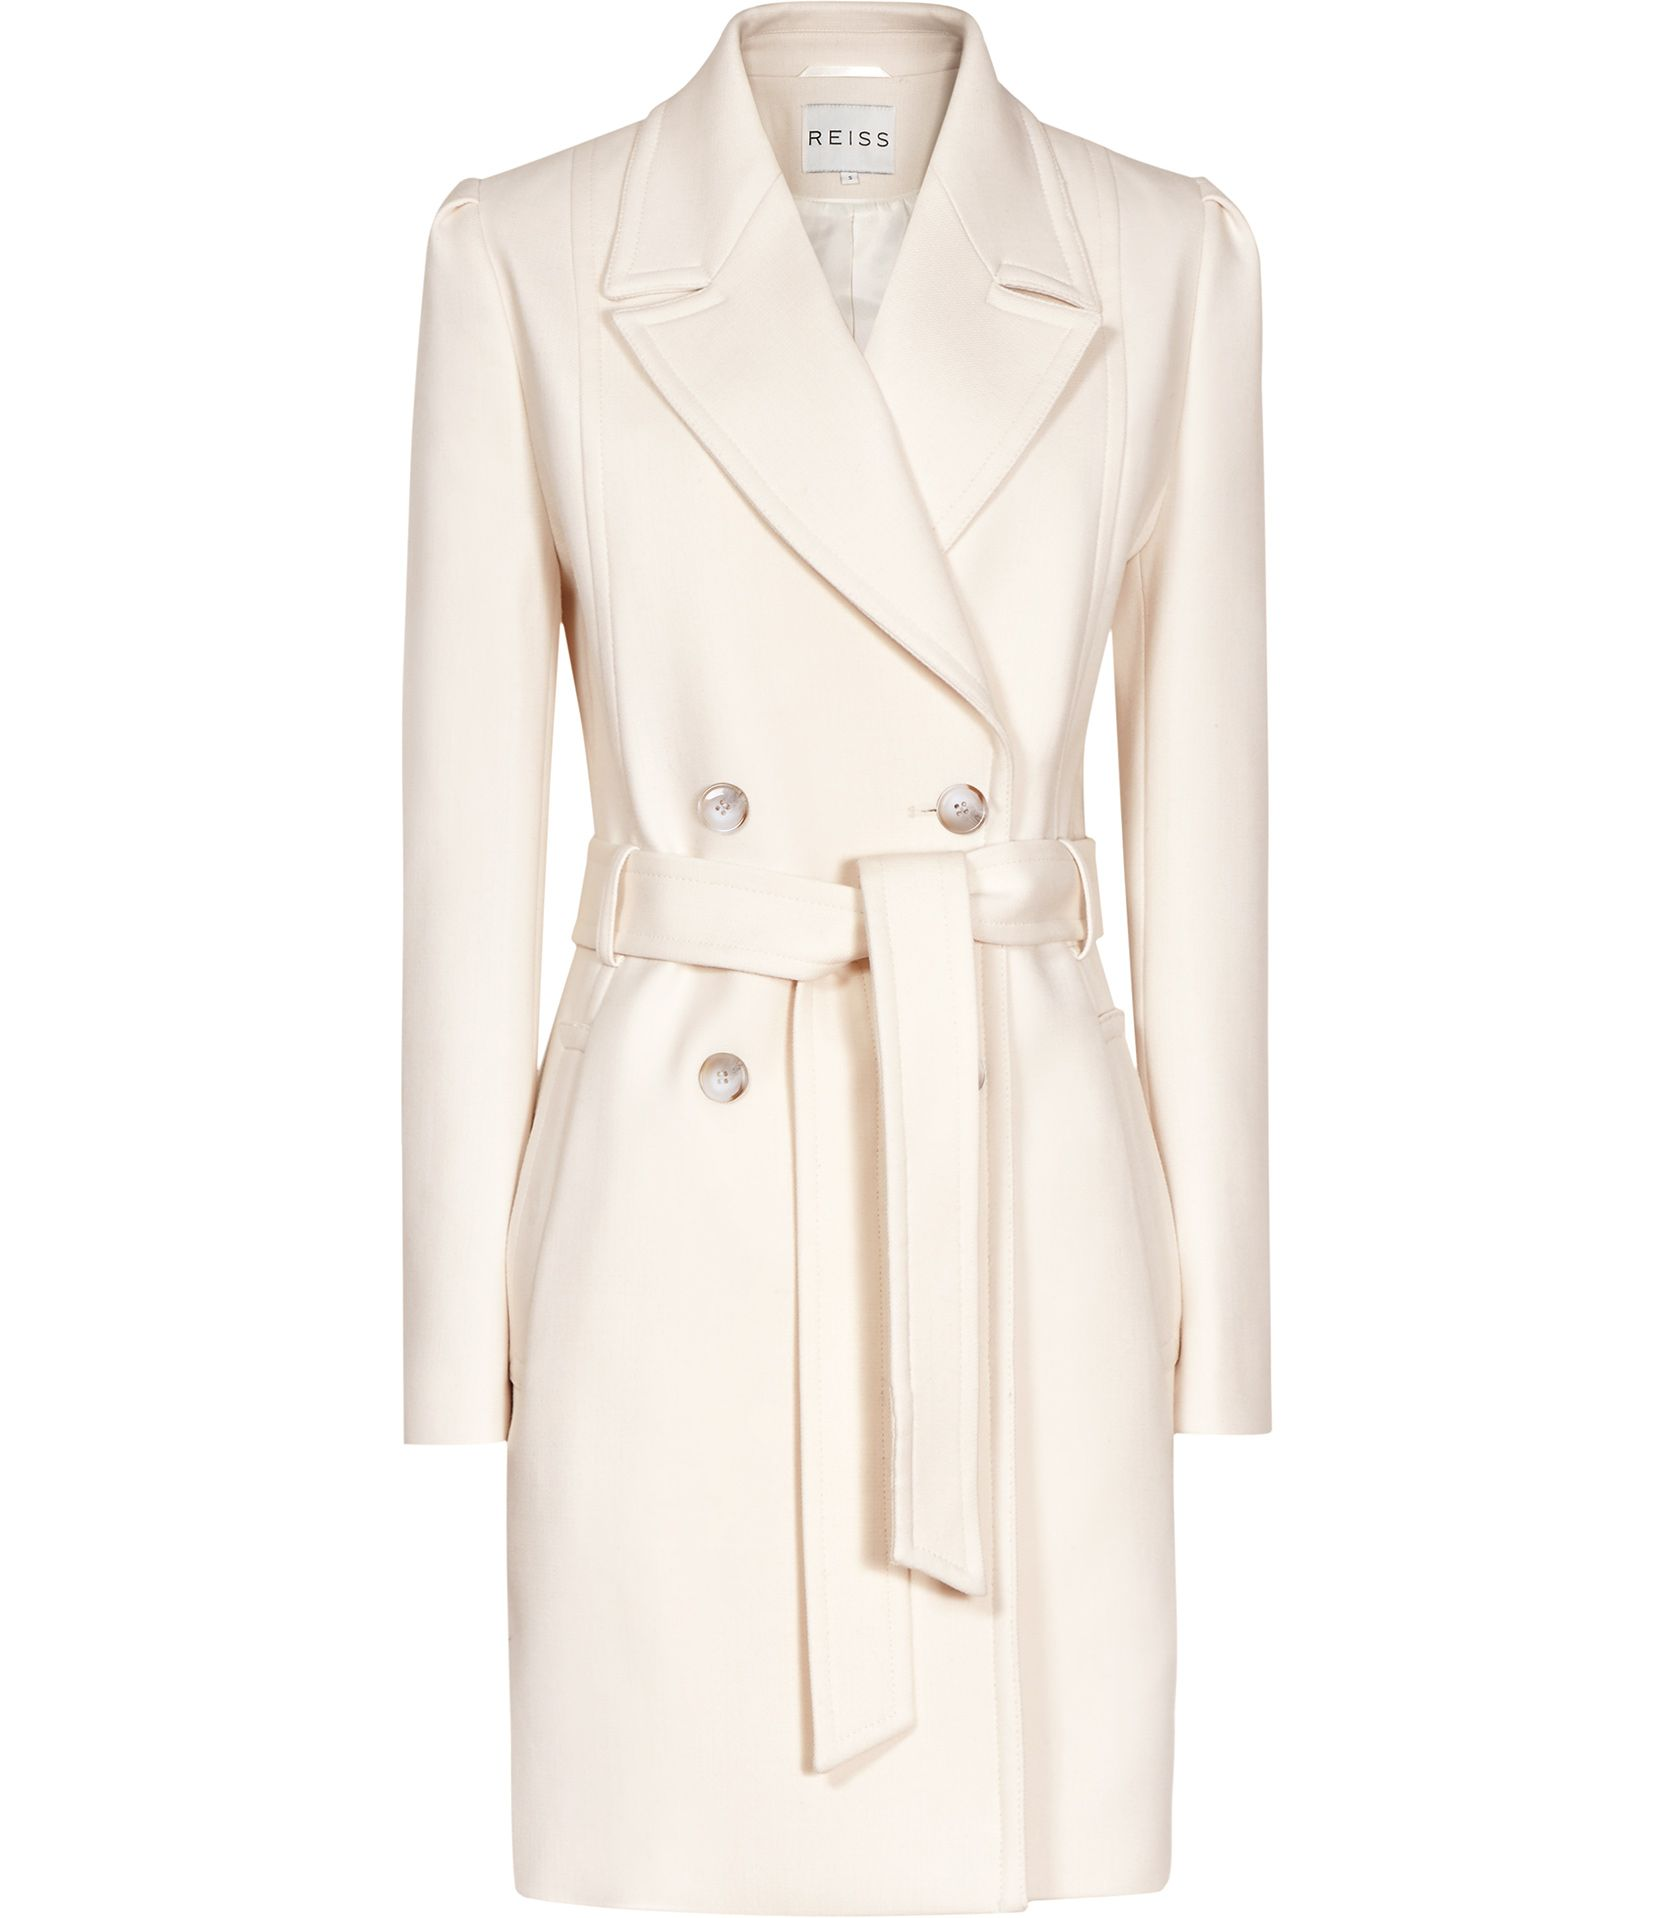 Kennedy Champagne Double Breasted Belted Coat | Trendy